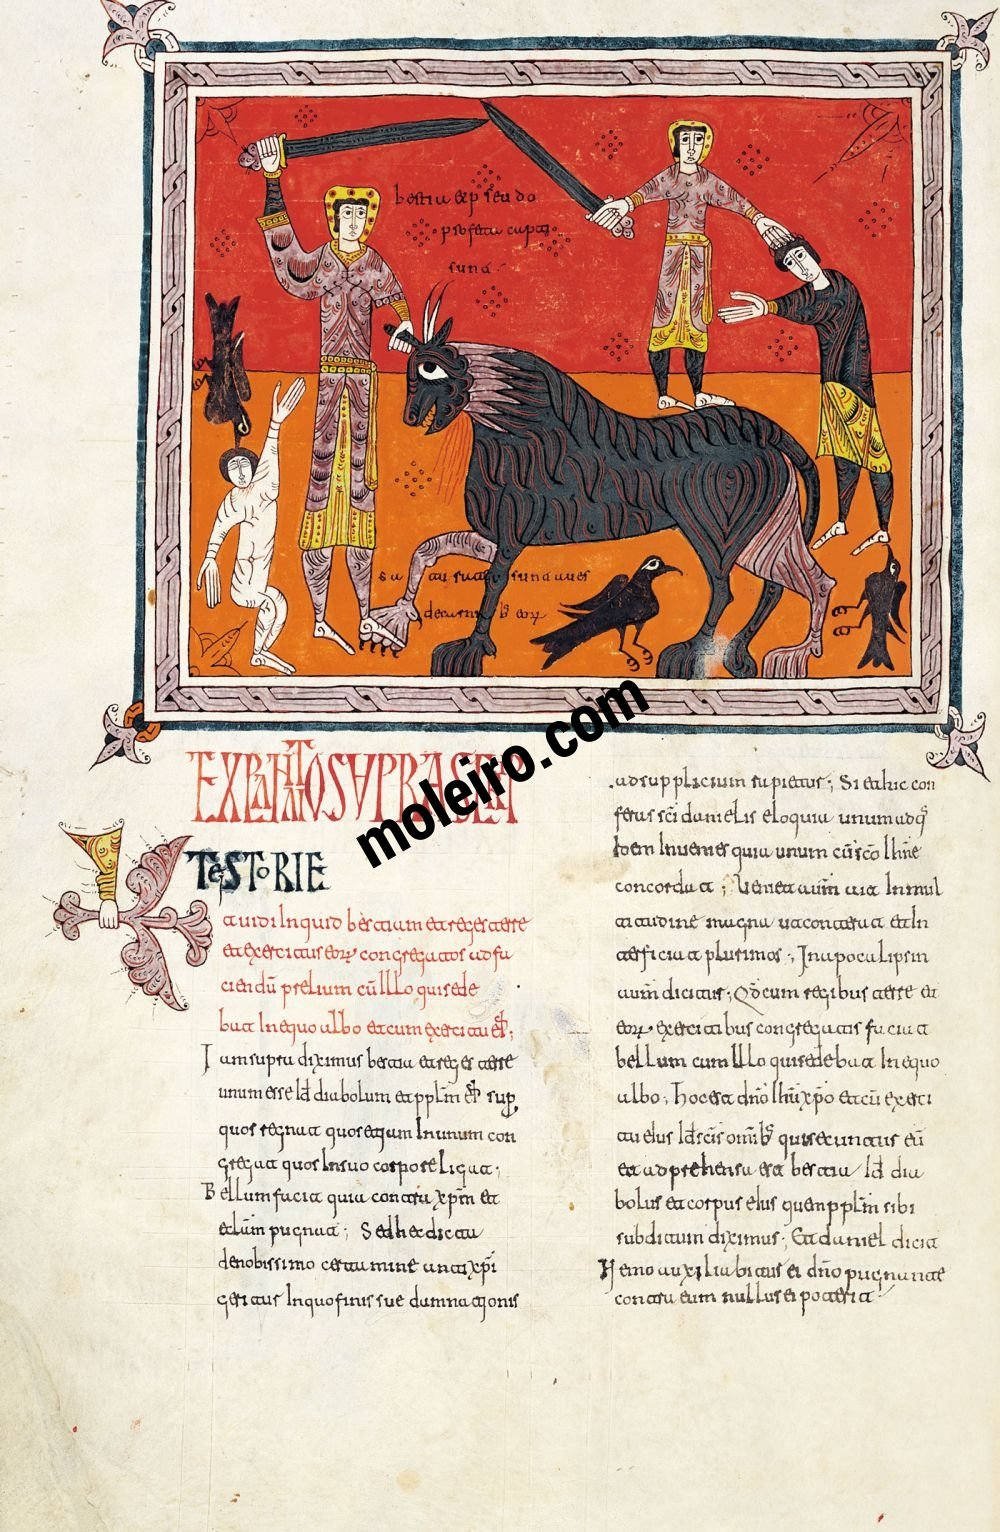 Silos Beatus f. 198v. The triumph of the rider over the beast